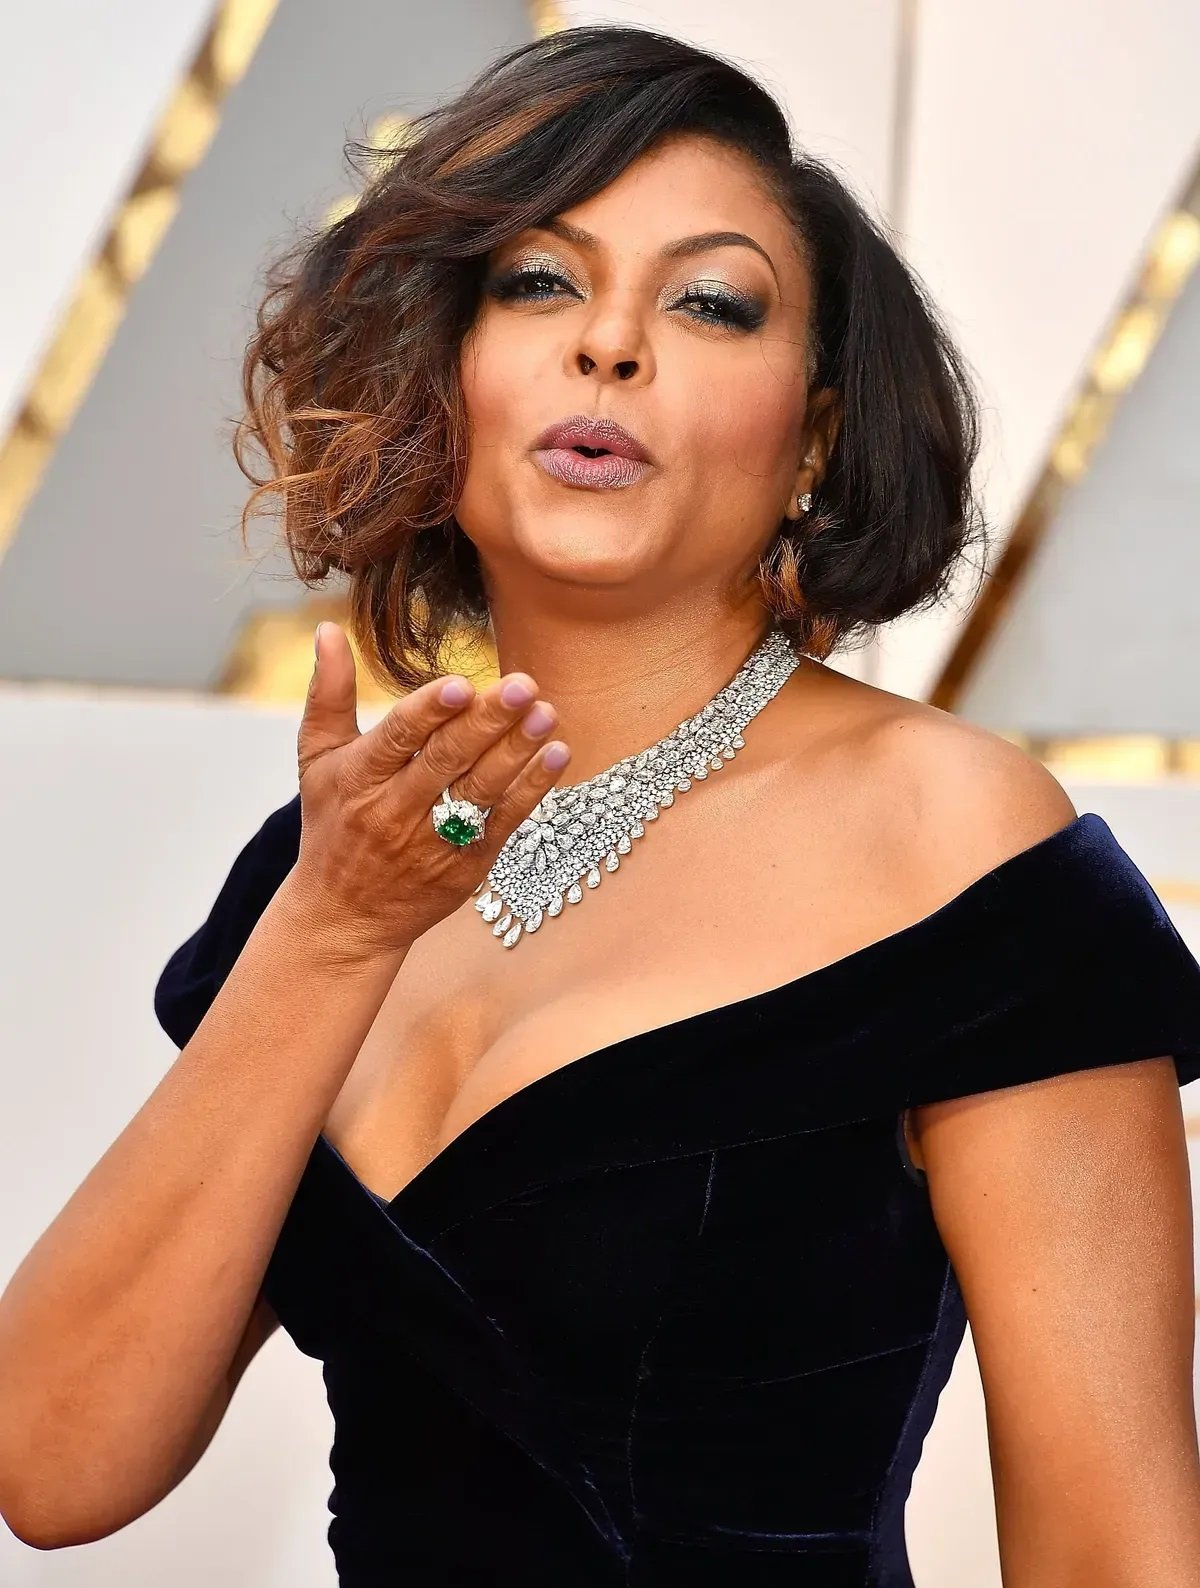 Taraji P. Henson attends the 89th Annual Academy Awards at Hollywood & Highland Center on February 26, 2017.   Photo: Getty Images